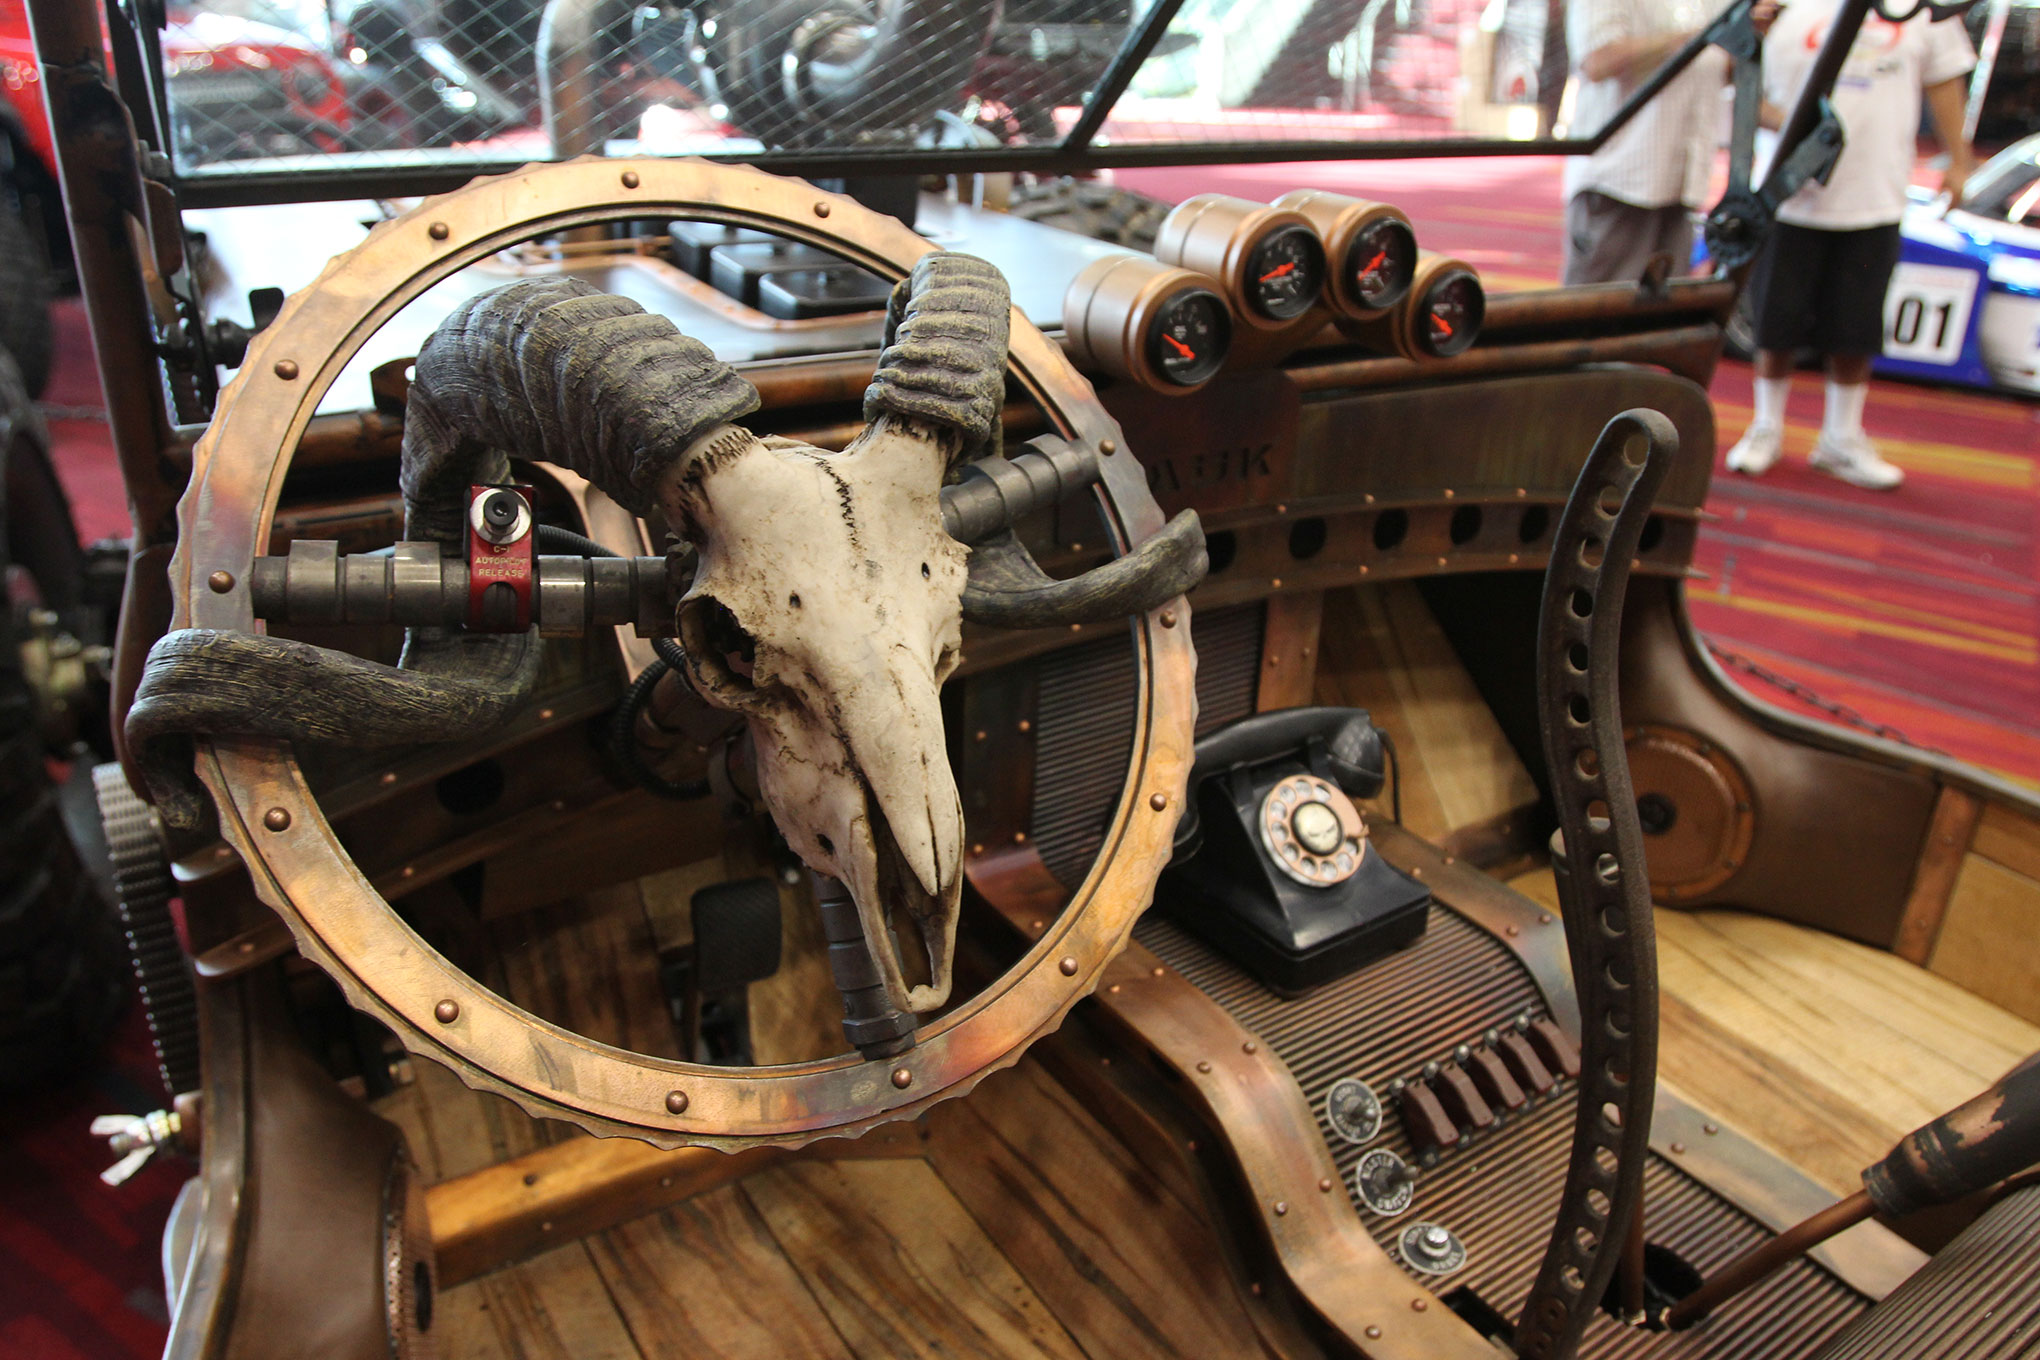 The interior sports a ton of repurposed items including the old pump handle transmission shifter.